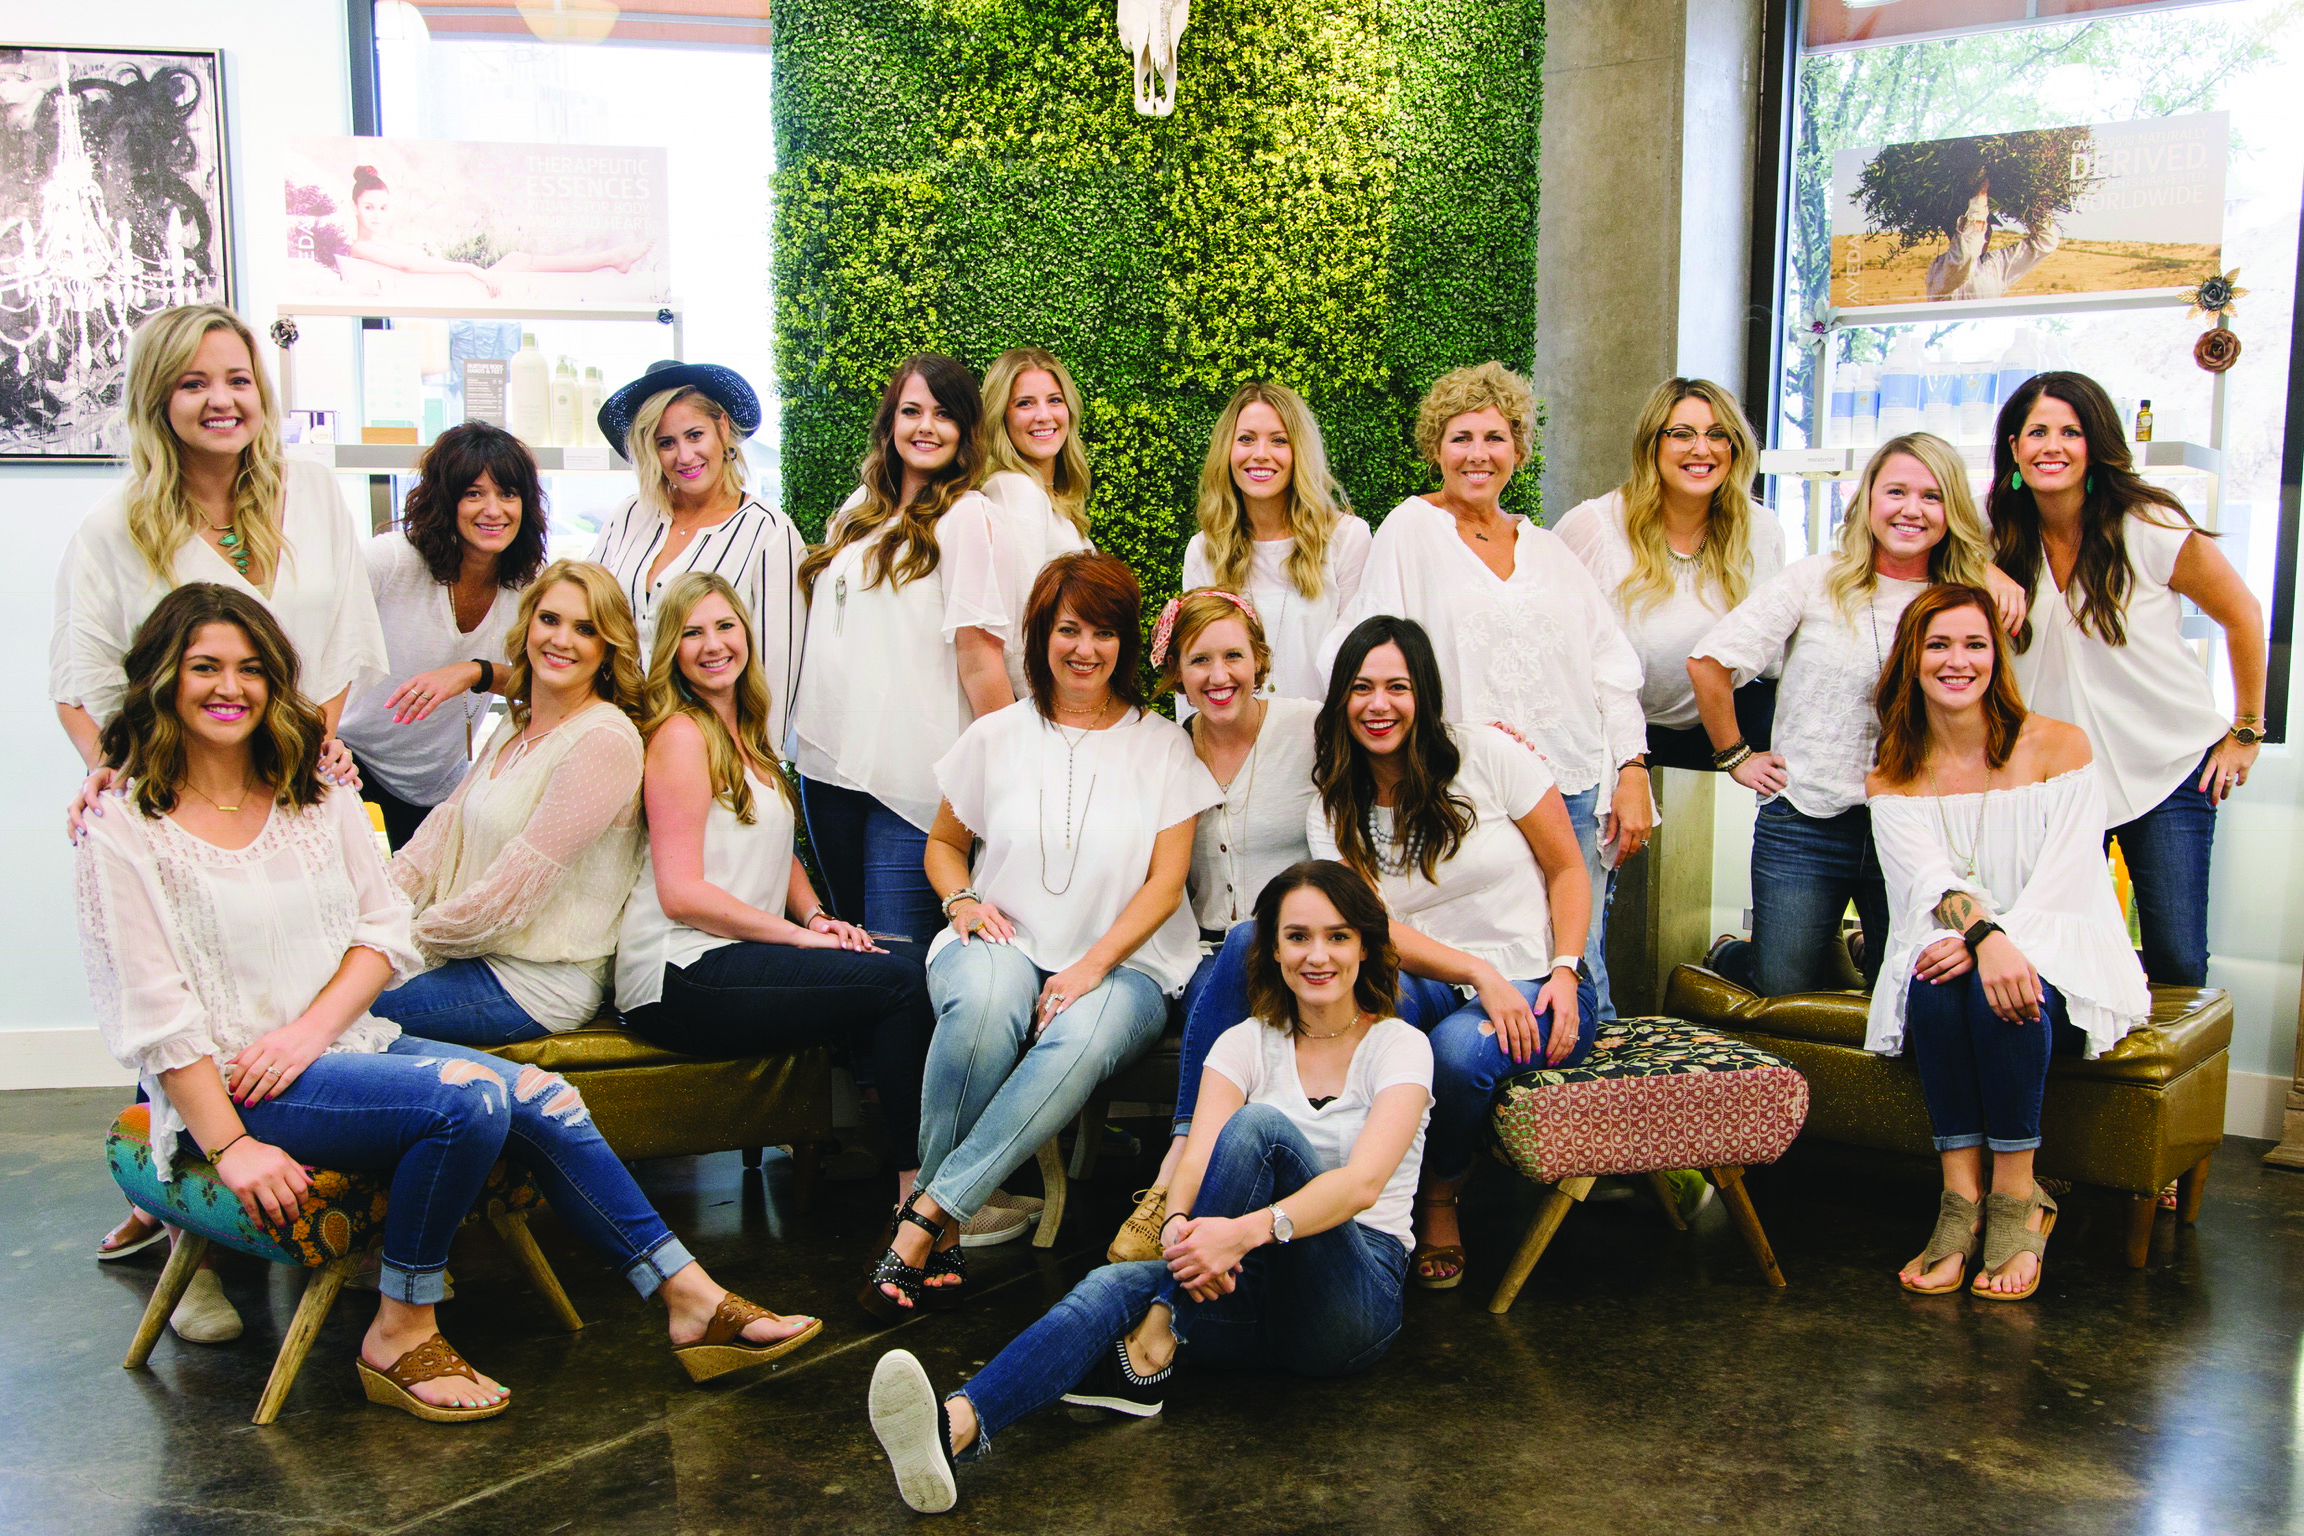 The team from DV8 The Salon in Grapevine, TX, boosted retail sales by 110% after implementing a new system.